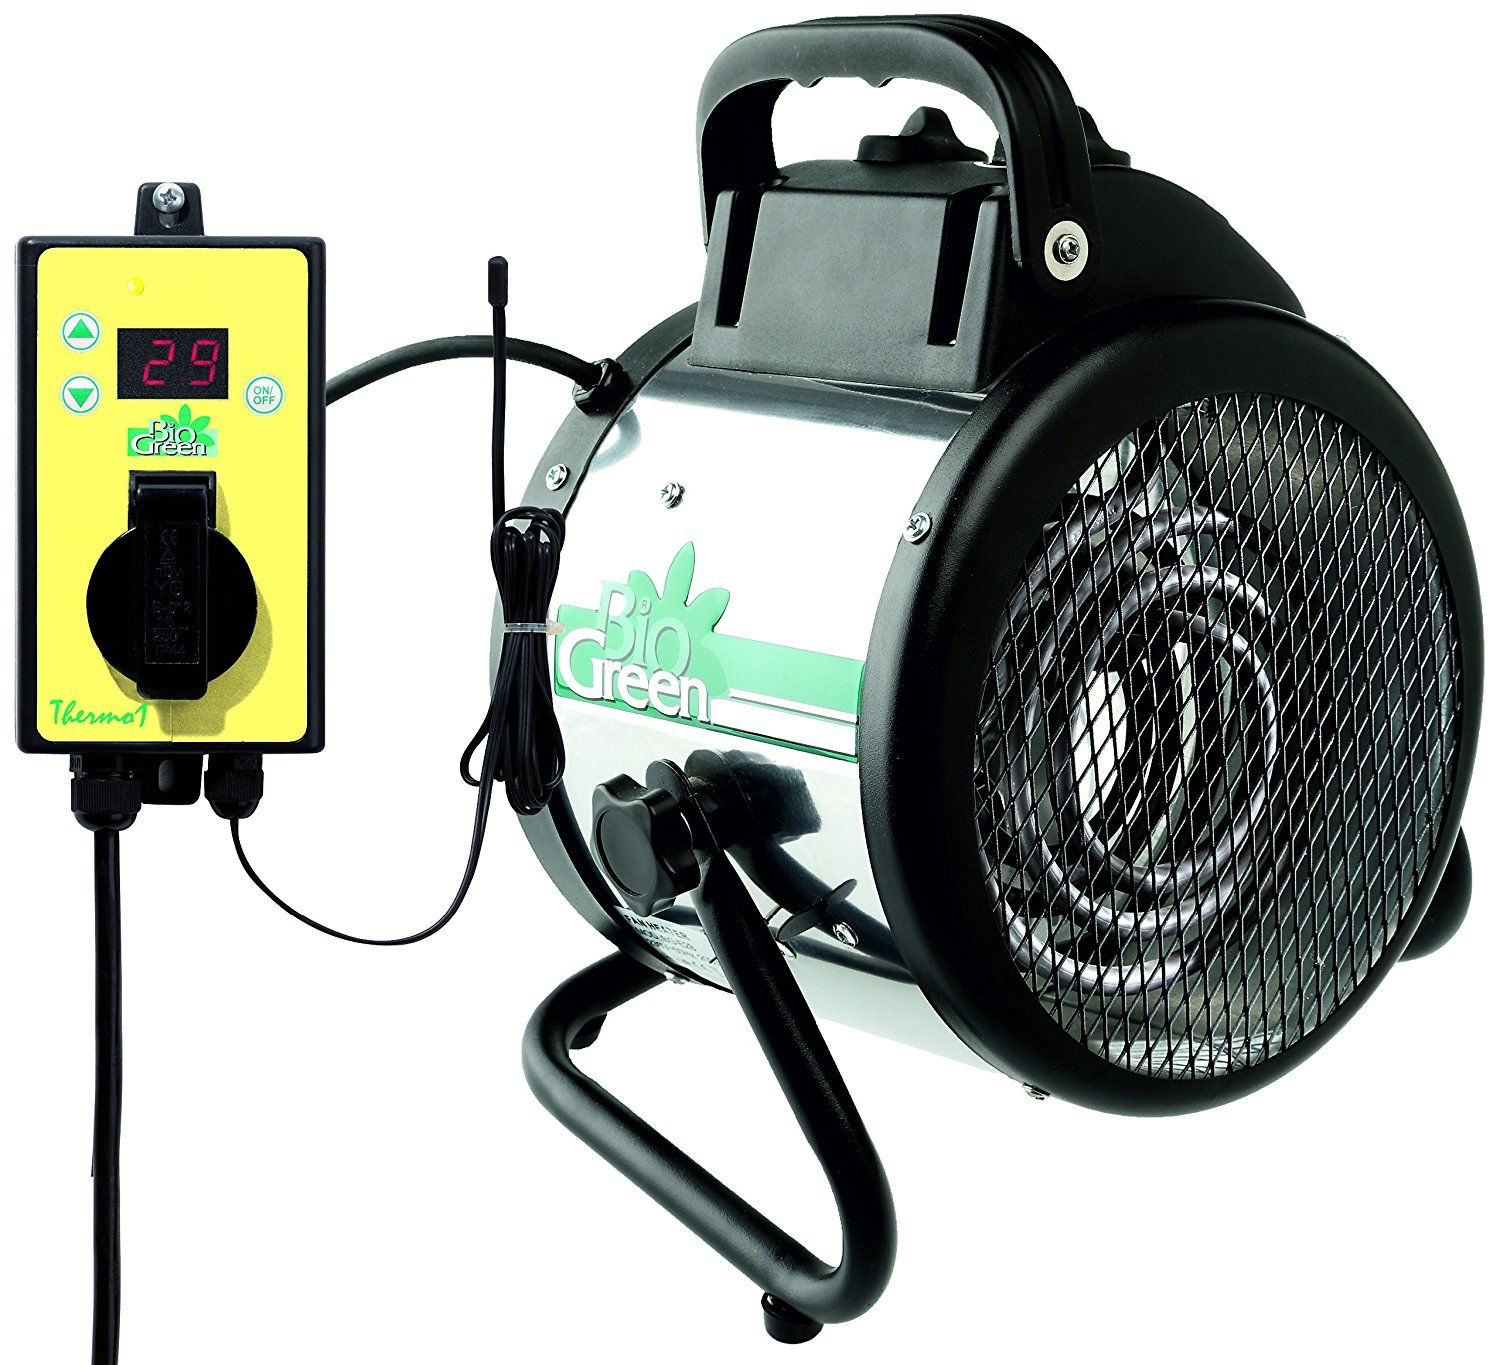 Bio Green Pal 20 Gb 2kw Palma Heater With Digital Thermostat You Drainage Pump Karcher Sp 3 Dirt Can Find